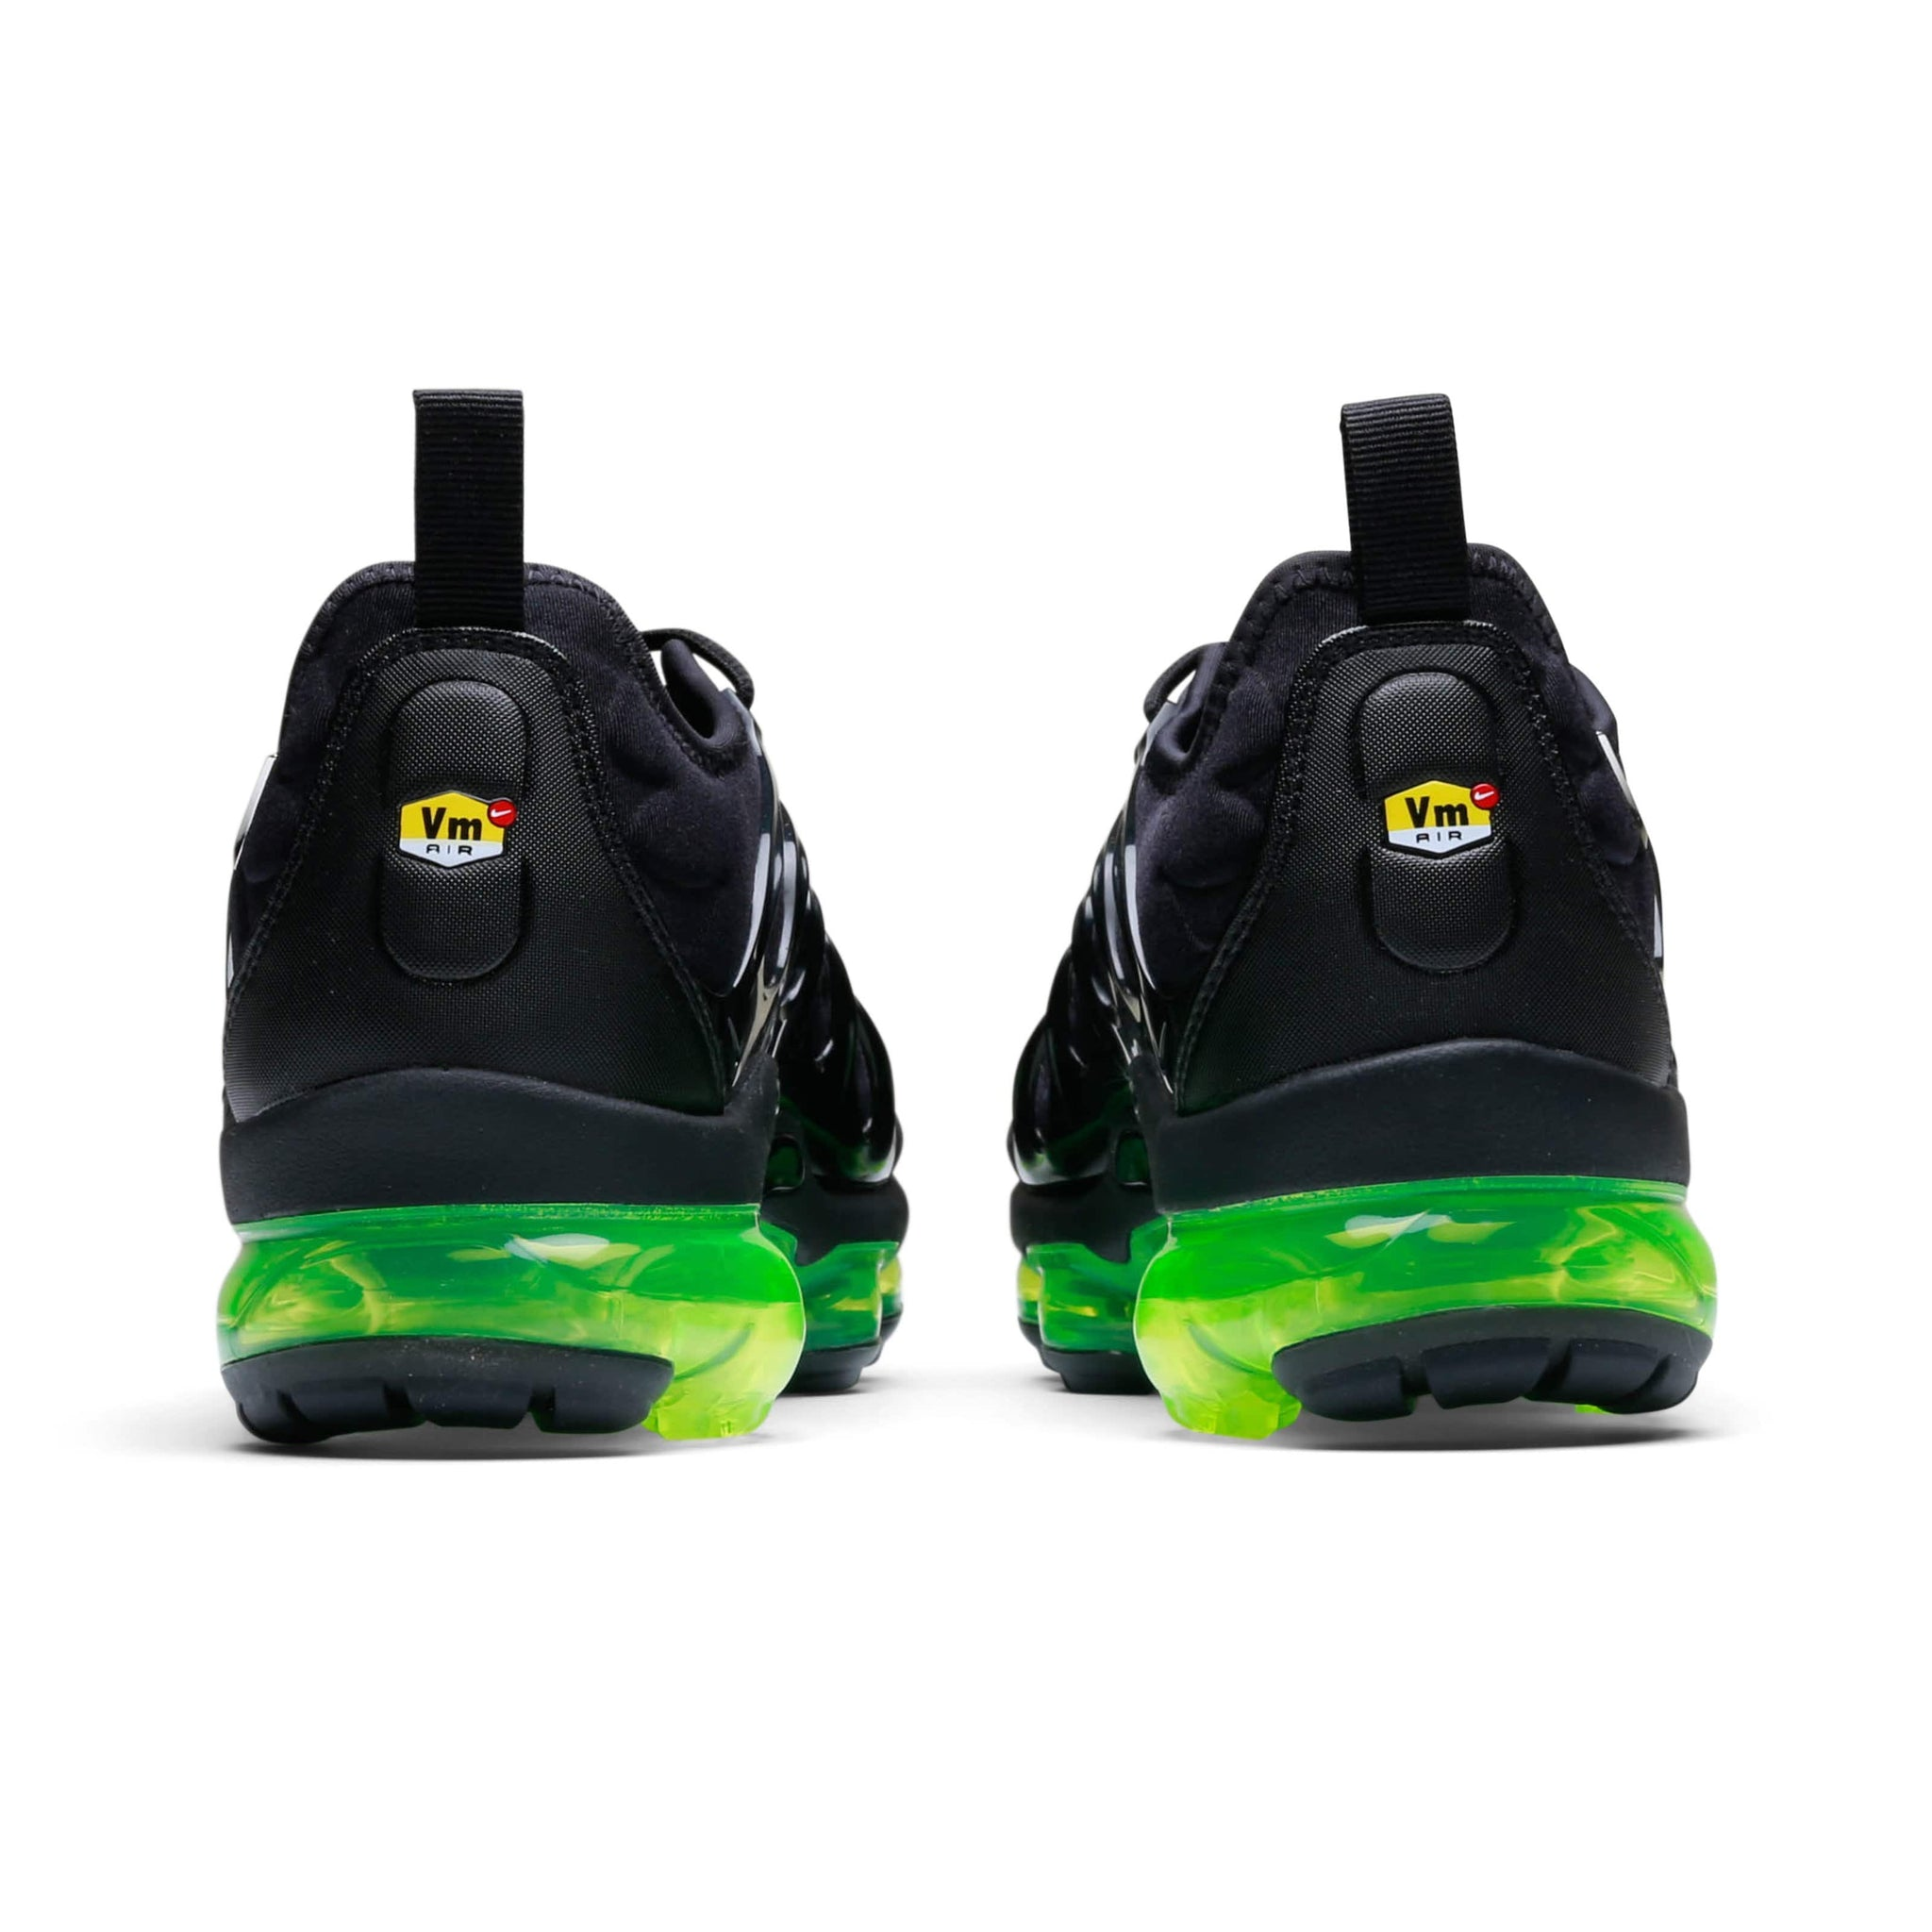 d0c37d05307d3 AIR VAPORMAX PLUS (BLACK REFLECT SLVR-VOLT)  924453-015  – Bodega